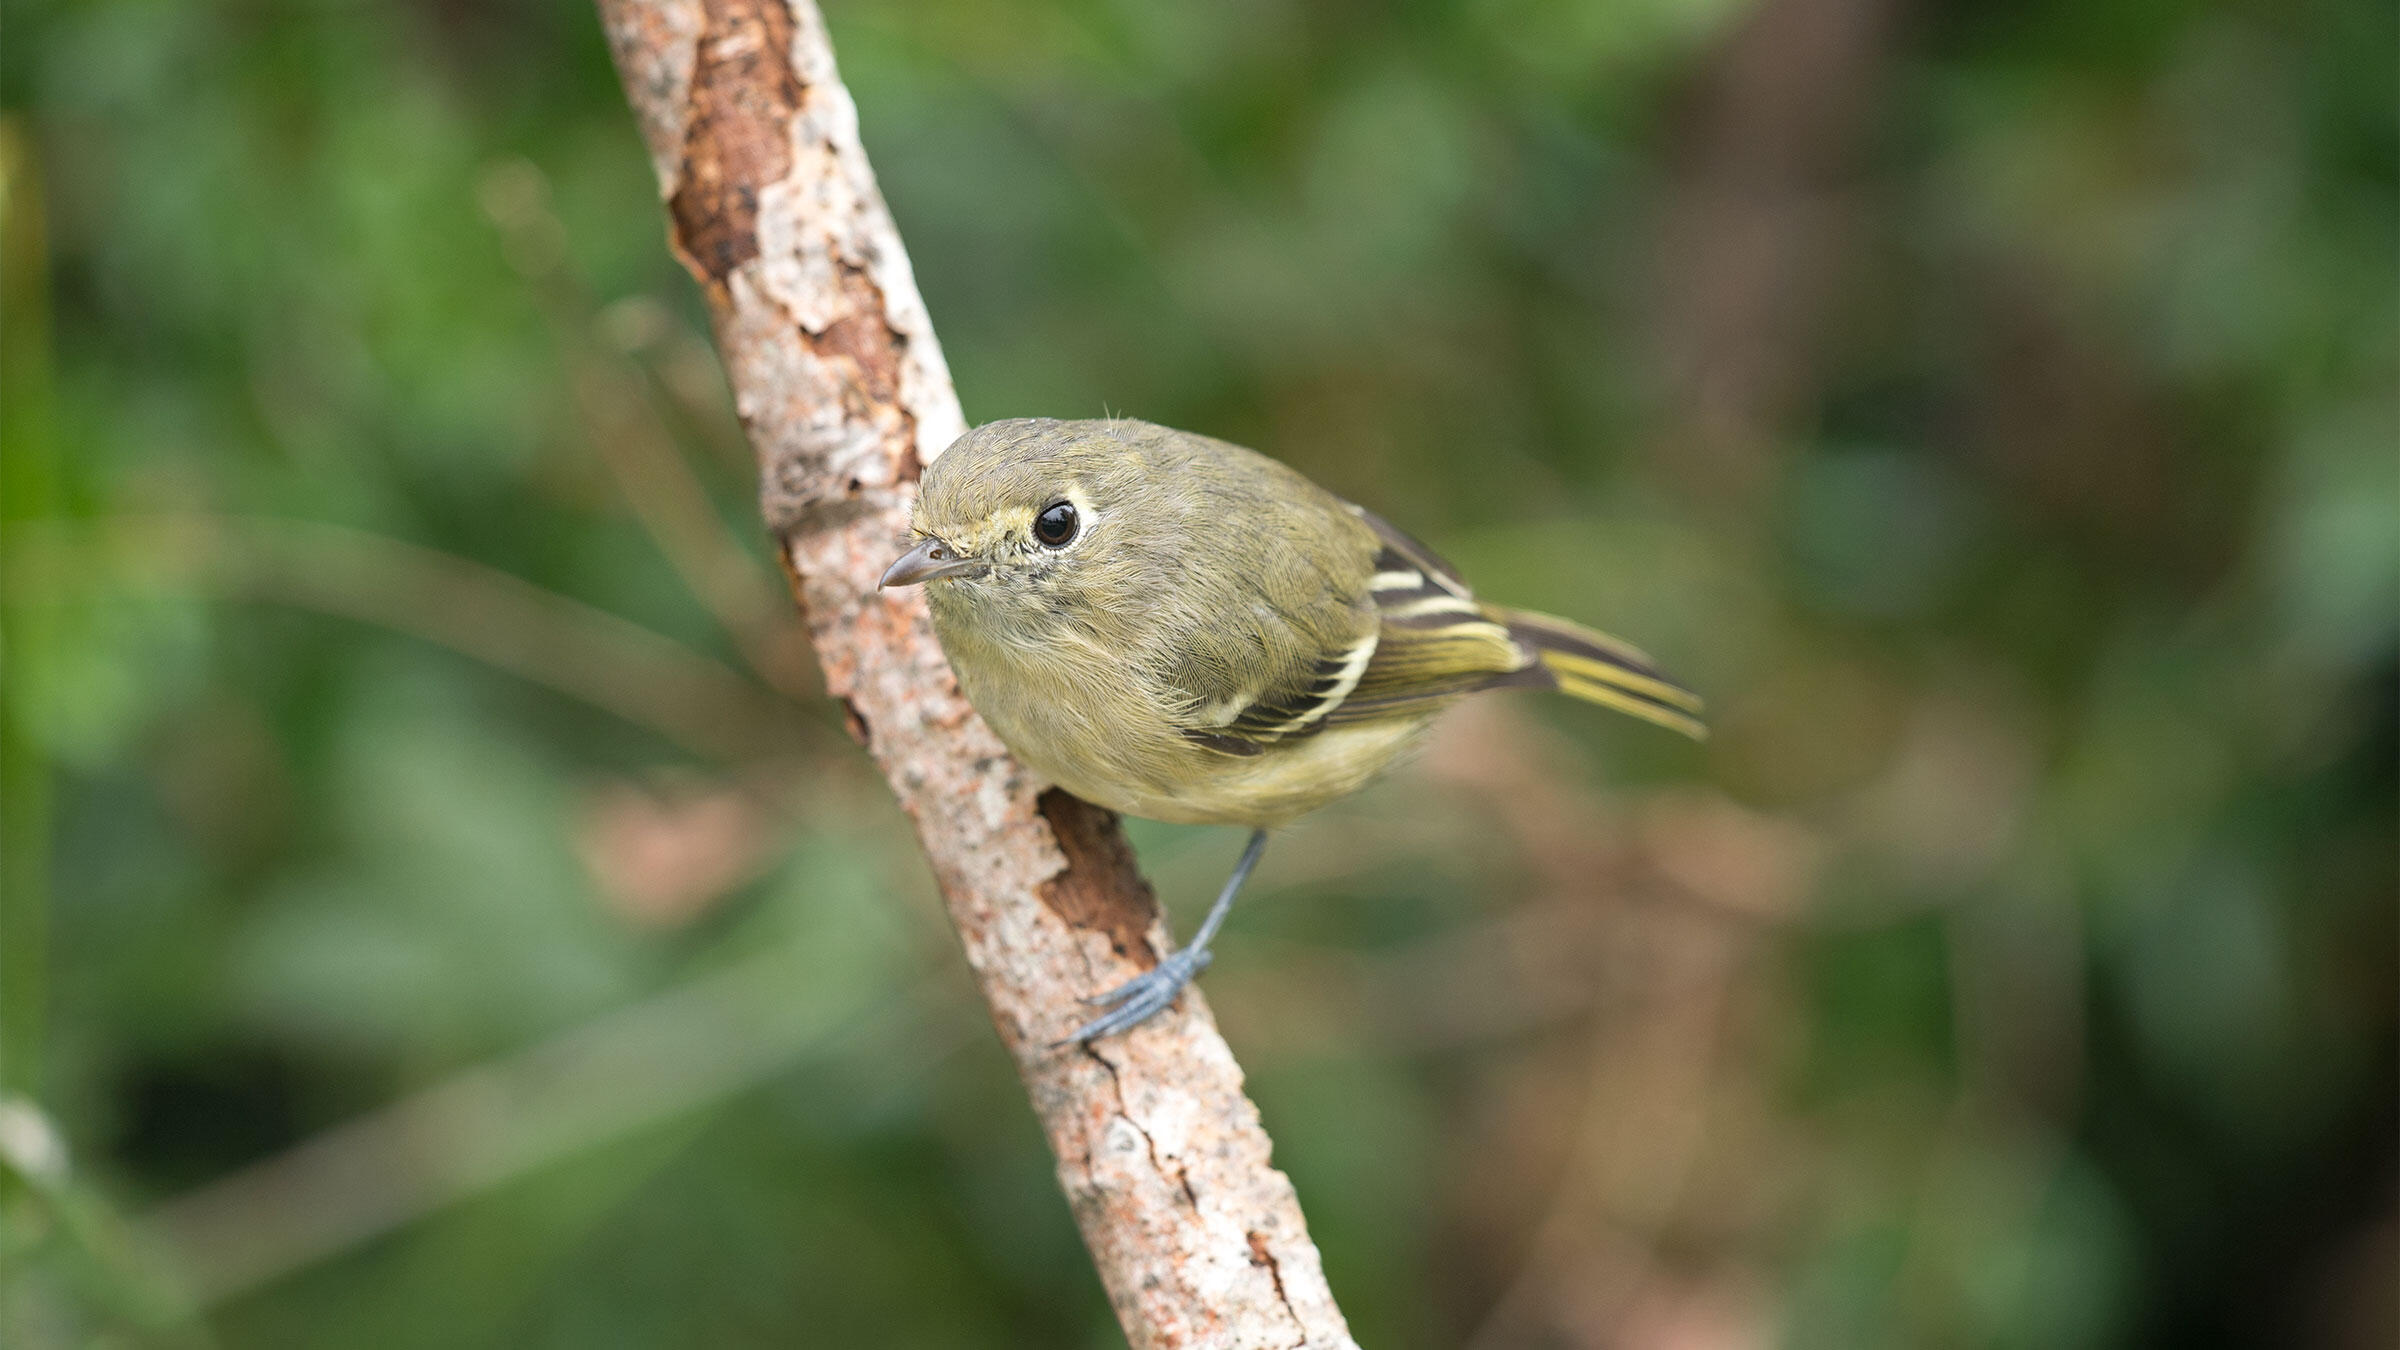 This Hutton's Vireo has a fetching face. But see it in a tree full of other songbirds, and all of a sudden, it's not so memorable. Vickie Anderson/National Geographic Creative